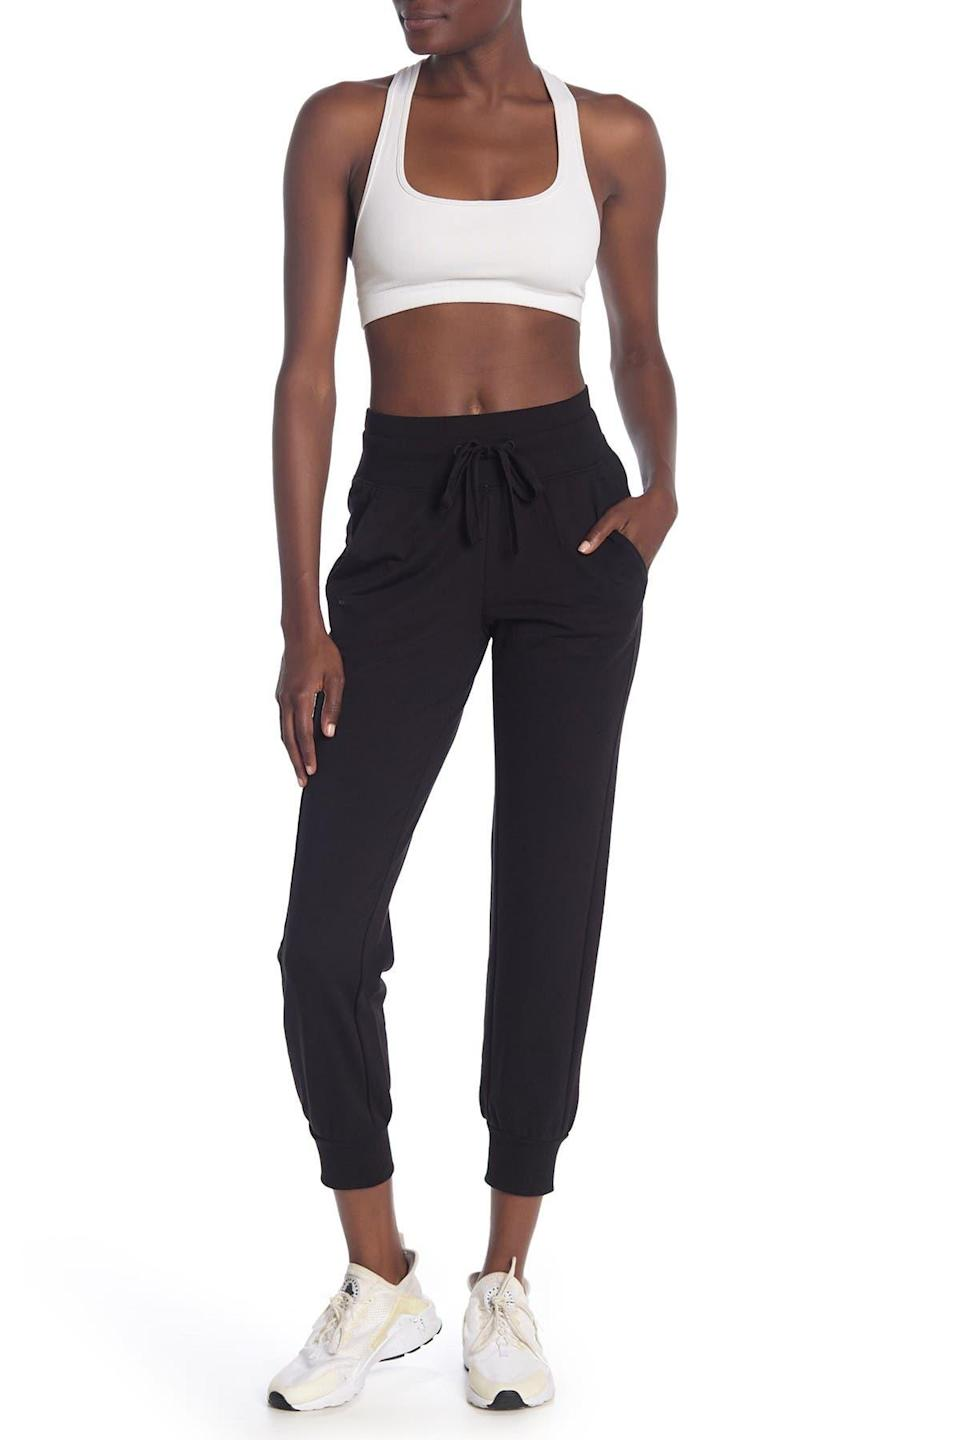 "<br><br><strong>Z By Zella</strong> Replay Slim Fleece Joggers, $, available at <a href=""https://go.skimresources.com/?id=30283X879131&url=https%3A%2F%2Fwww.nordstromrack.com%2Fs%2Fz-by-zella-replay-slim-fleece-joggers%2Fn2860687"" rel=""nofollow noopener"" target=""_blank"" data-ylk=""slk:Nordstrom Rack"" class=""link rapid-noclick-resp"">Nordstrom Rack</a>"